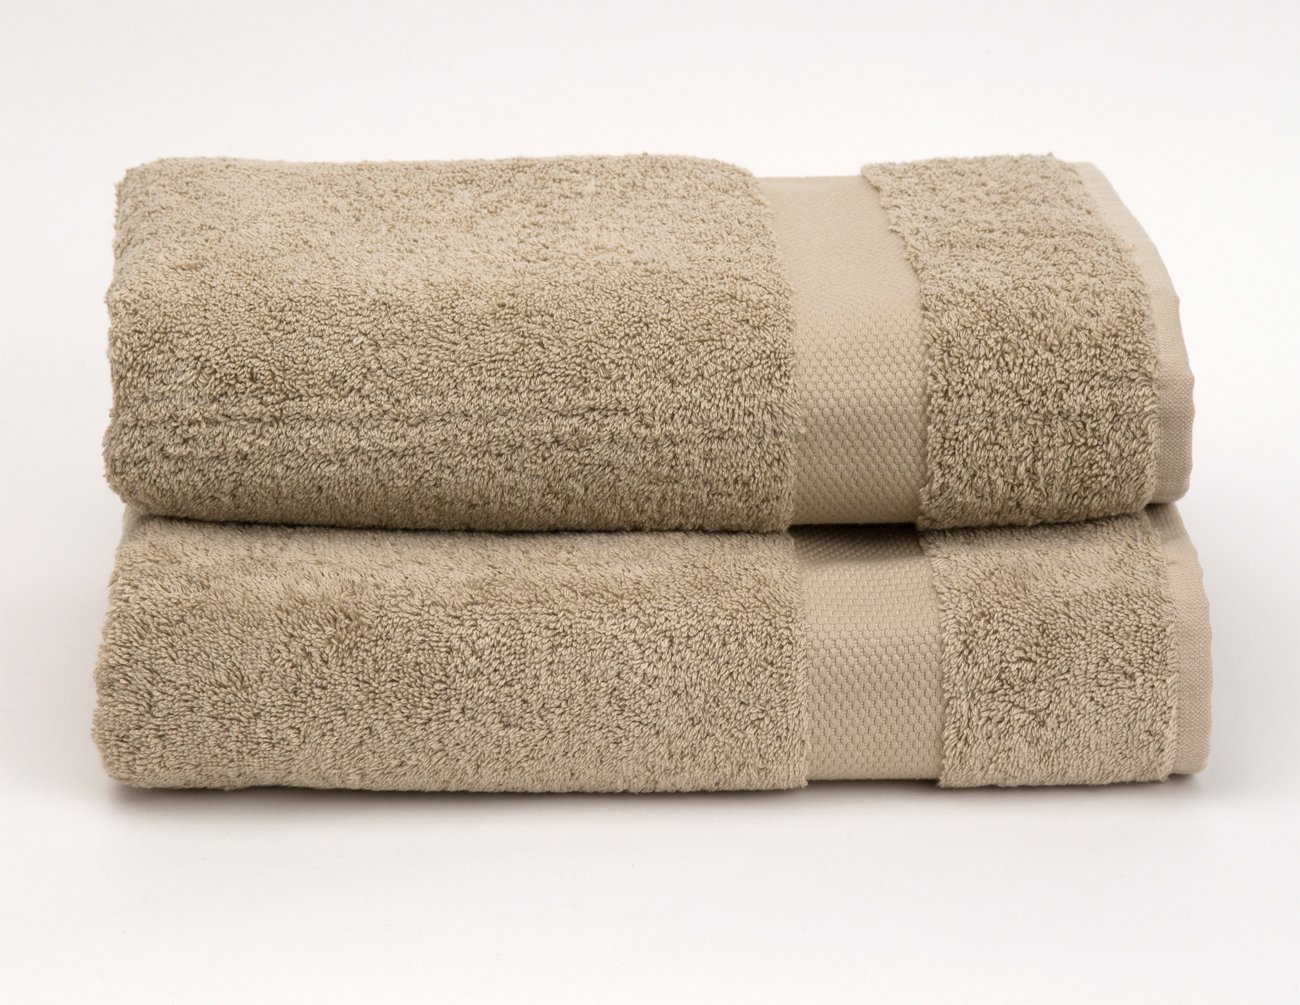 Desert Sand TowelSelections Pearl Collection Luxury Soft Towels 100/% Turkish Cotton 6 Washcloths Made in Turkey